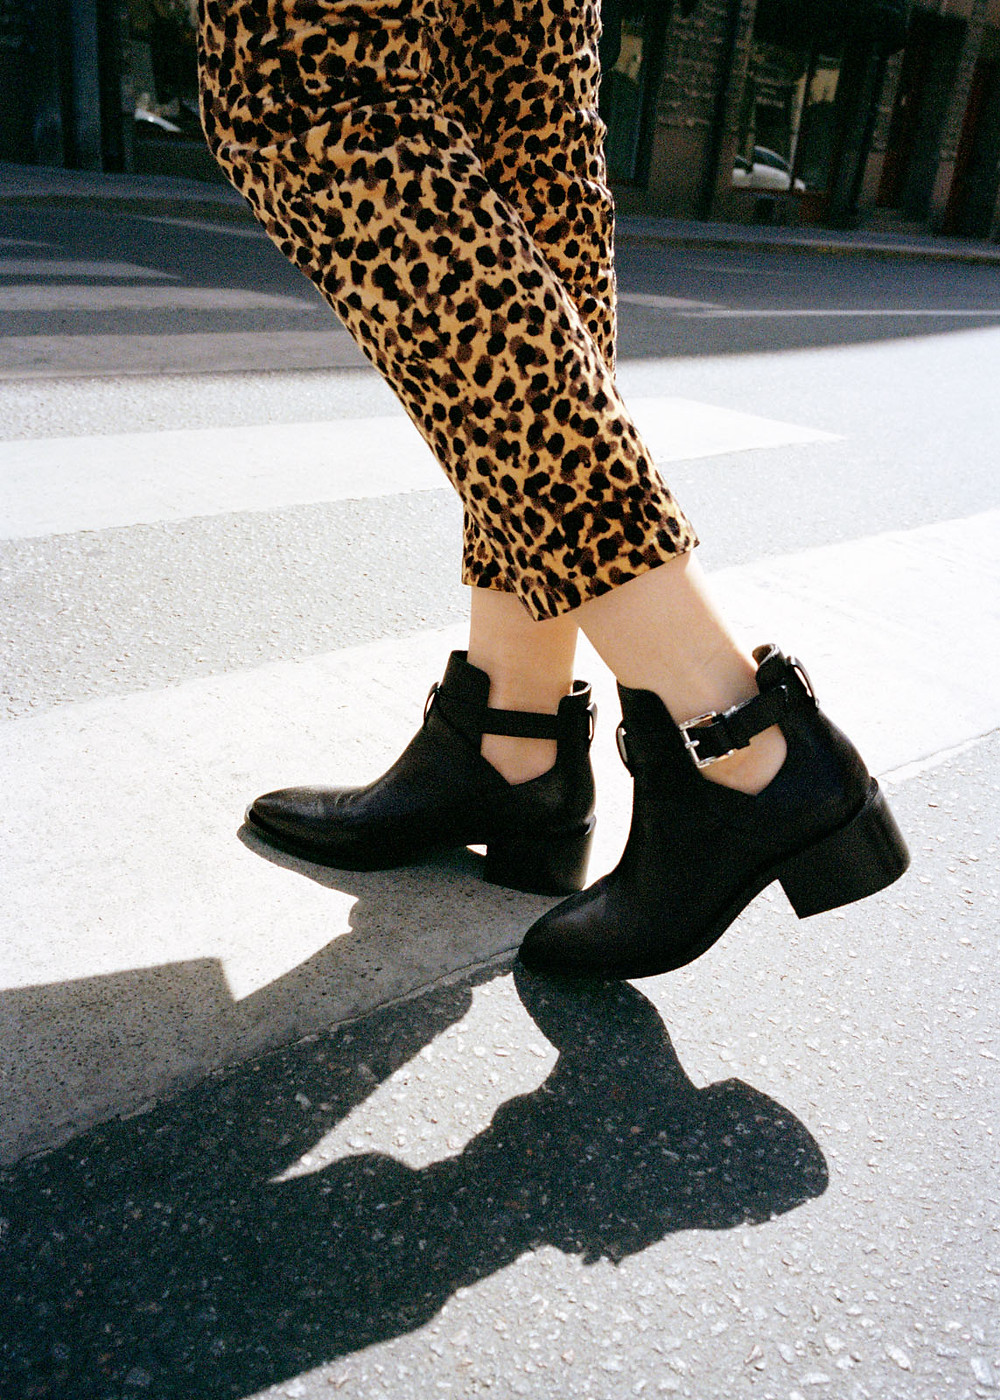 & Other Stories Cut Out Ankle Boot $179